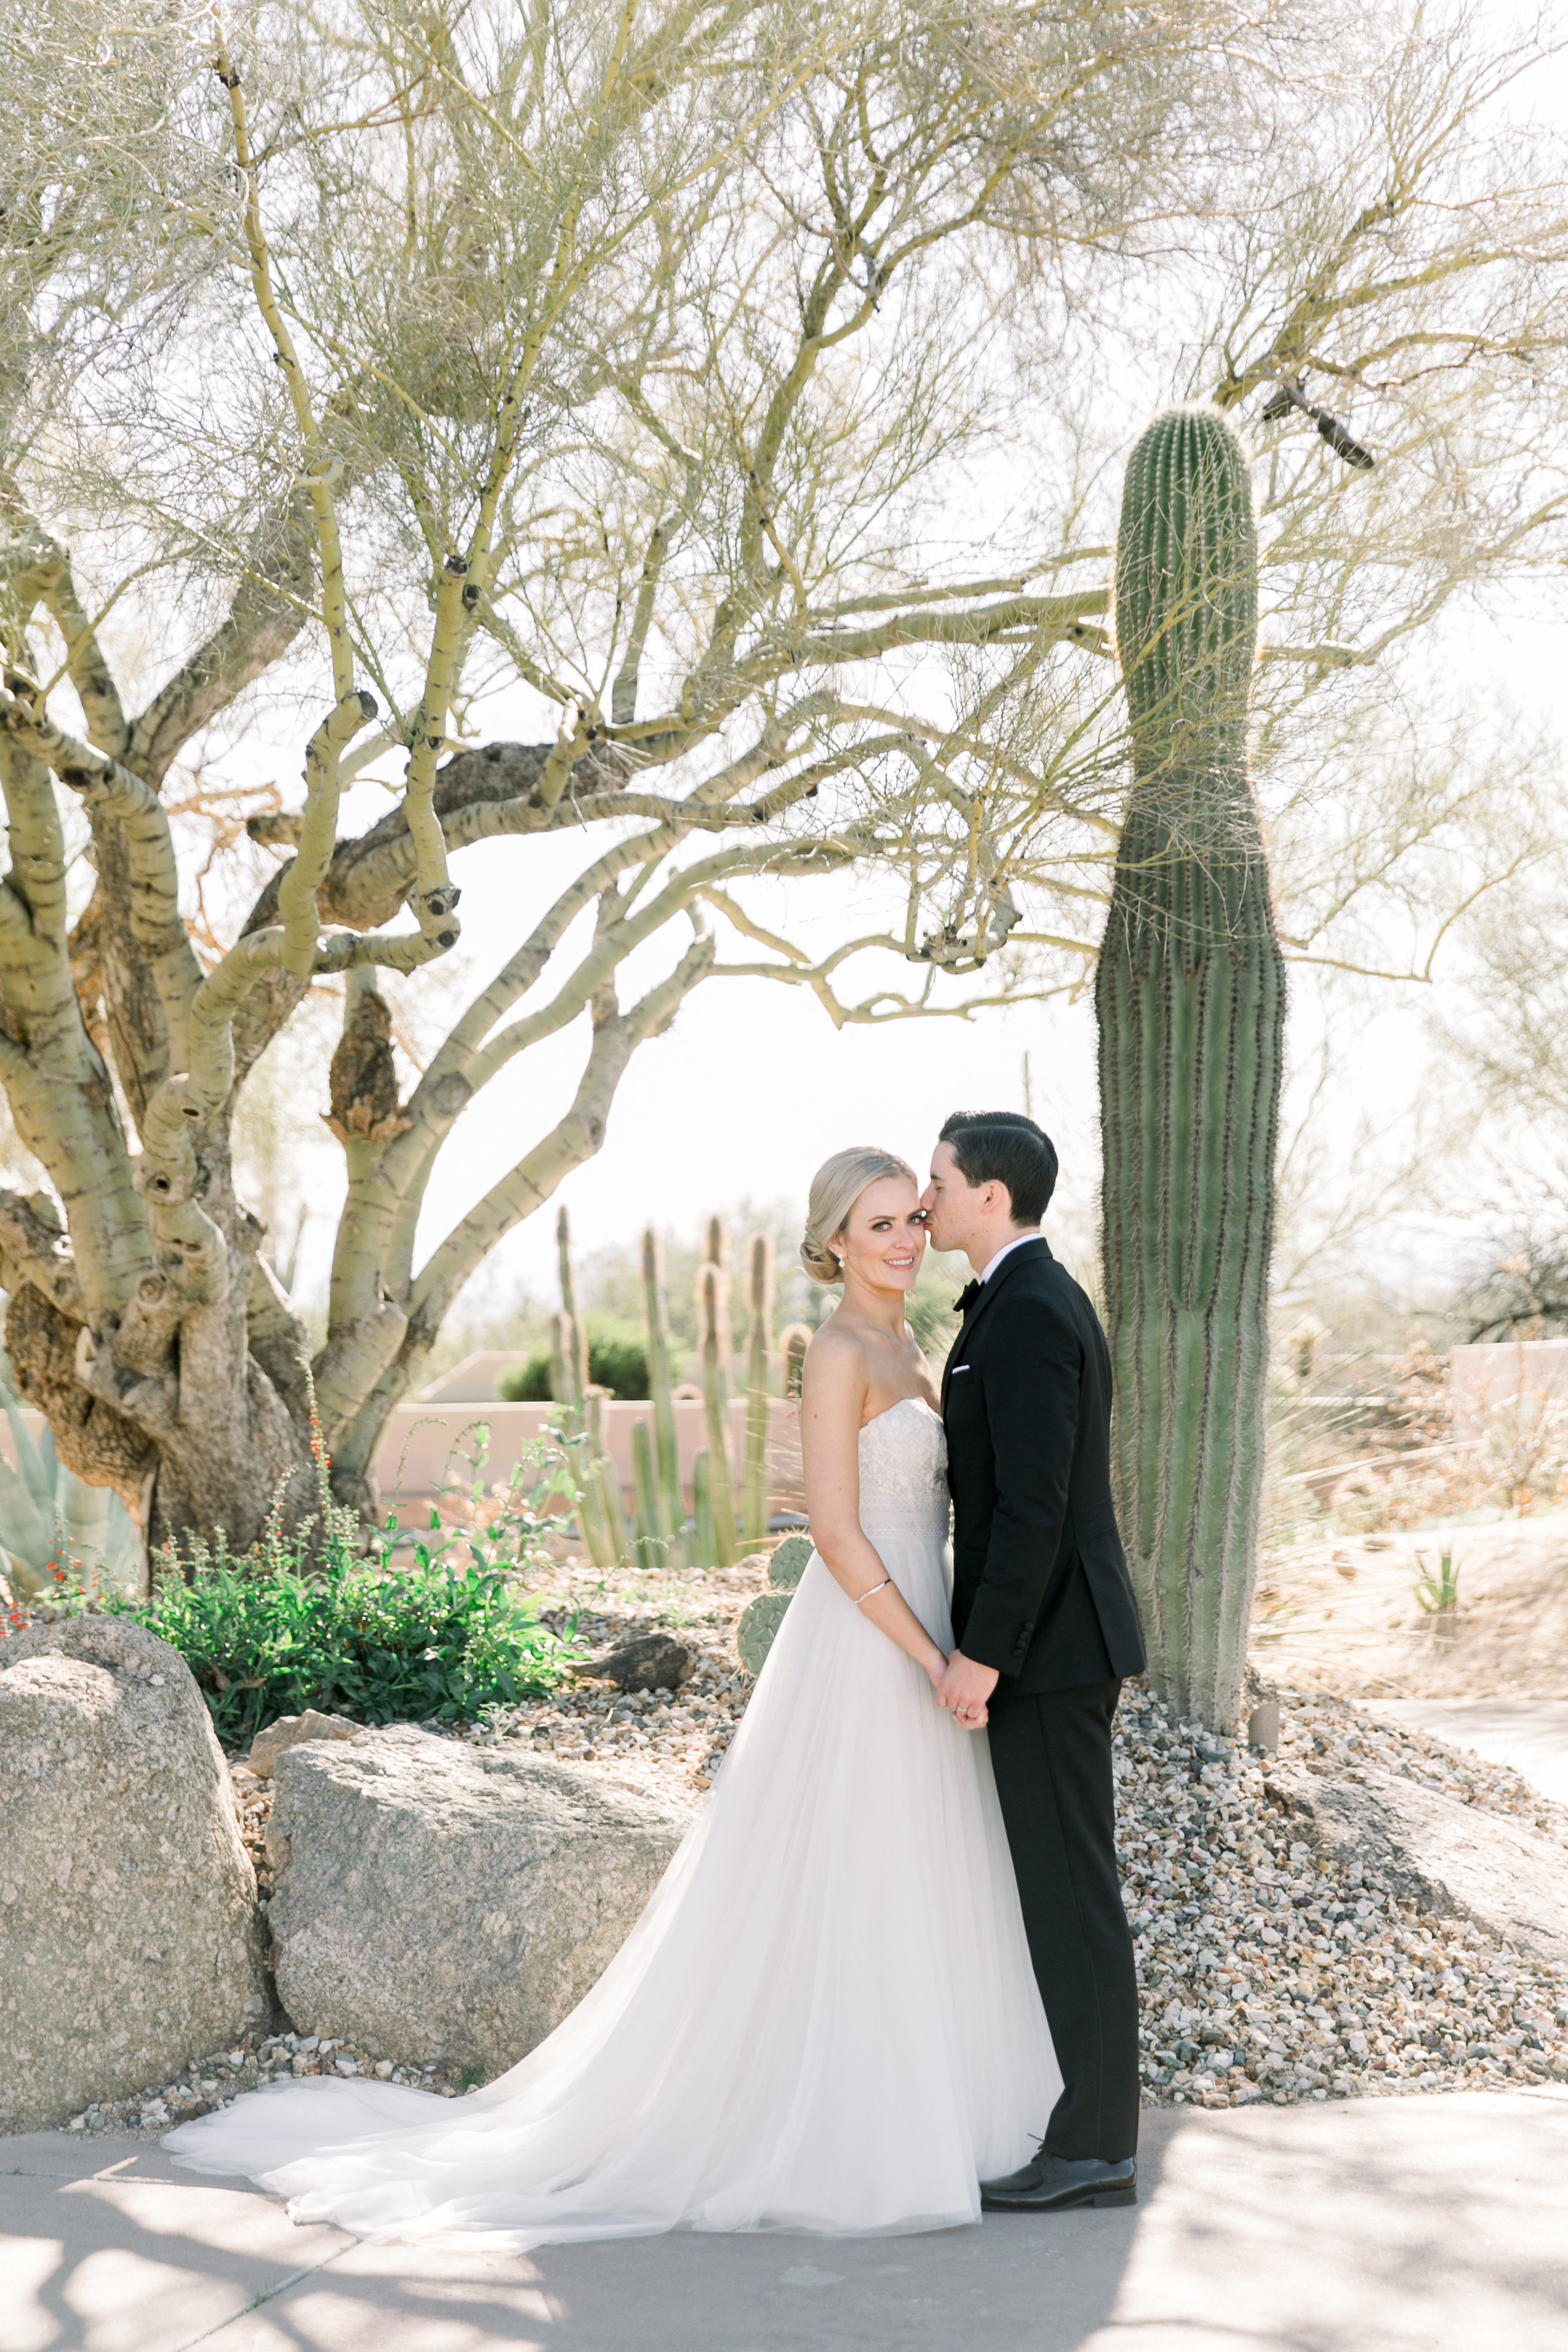 Karlie Colleen Photography - Arizona Wedding at The Troon Scottsdale Country Club - Paige & Shane -152